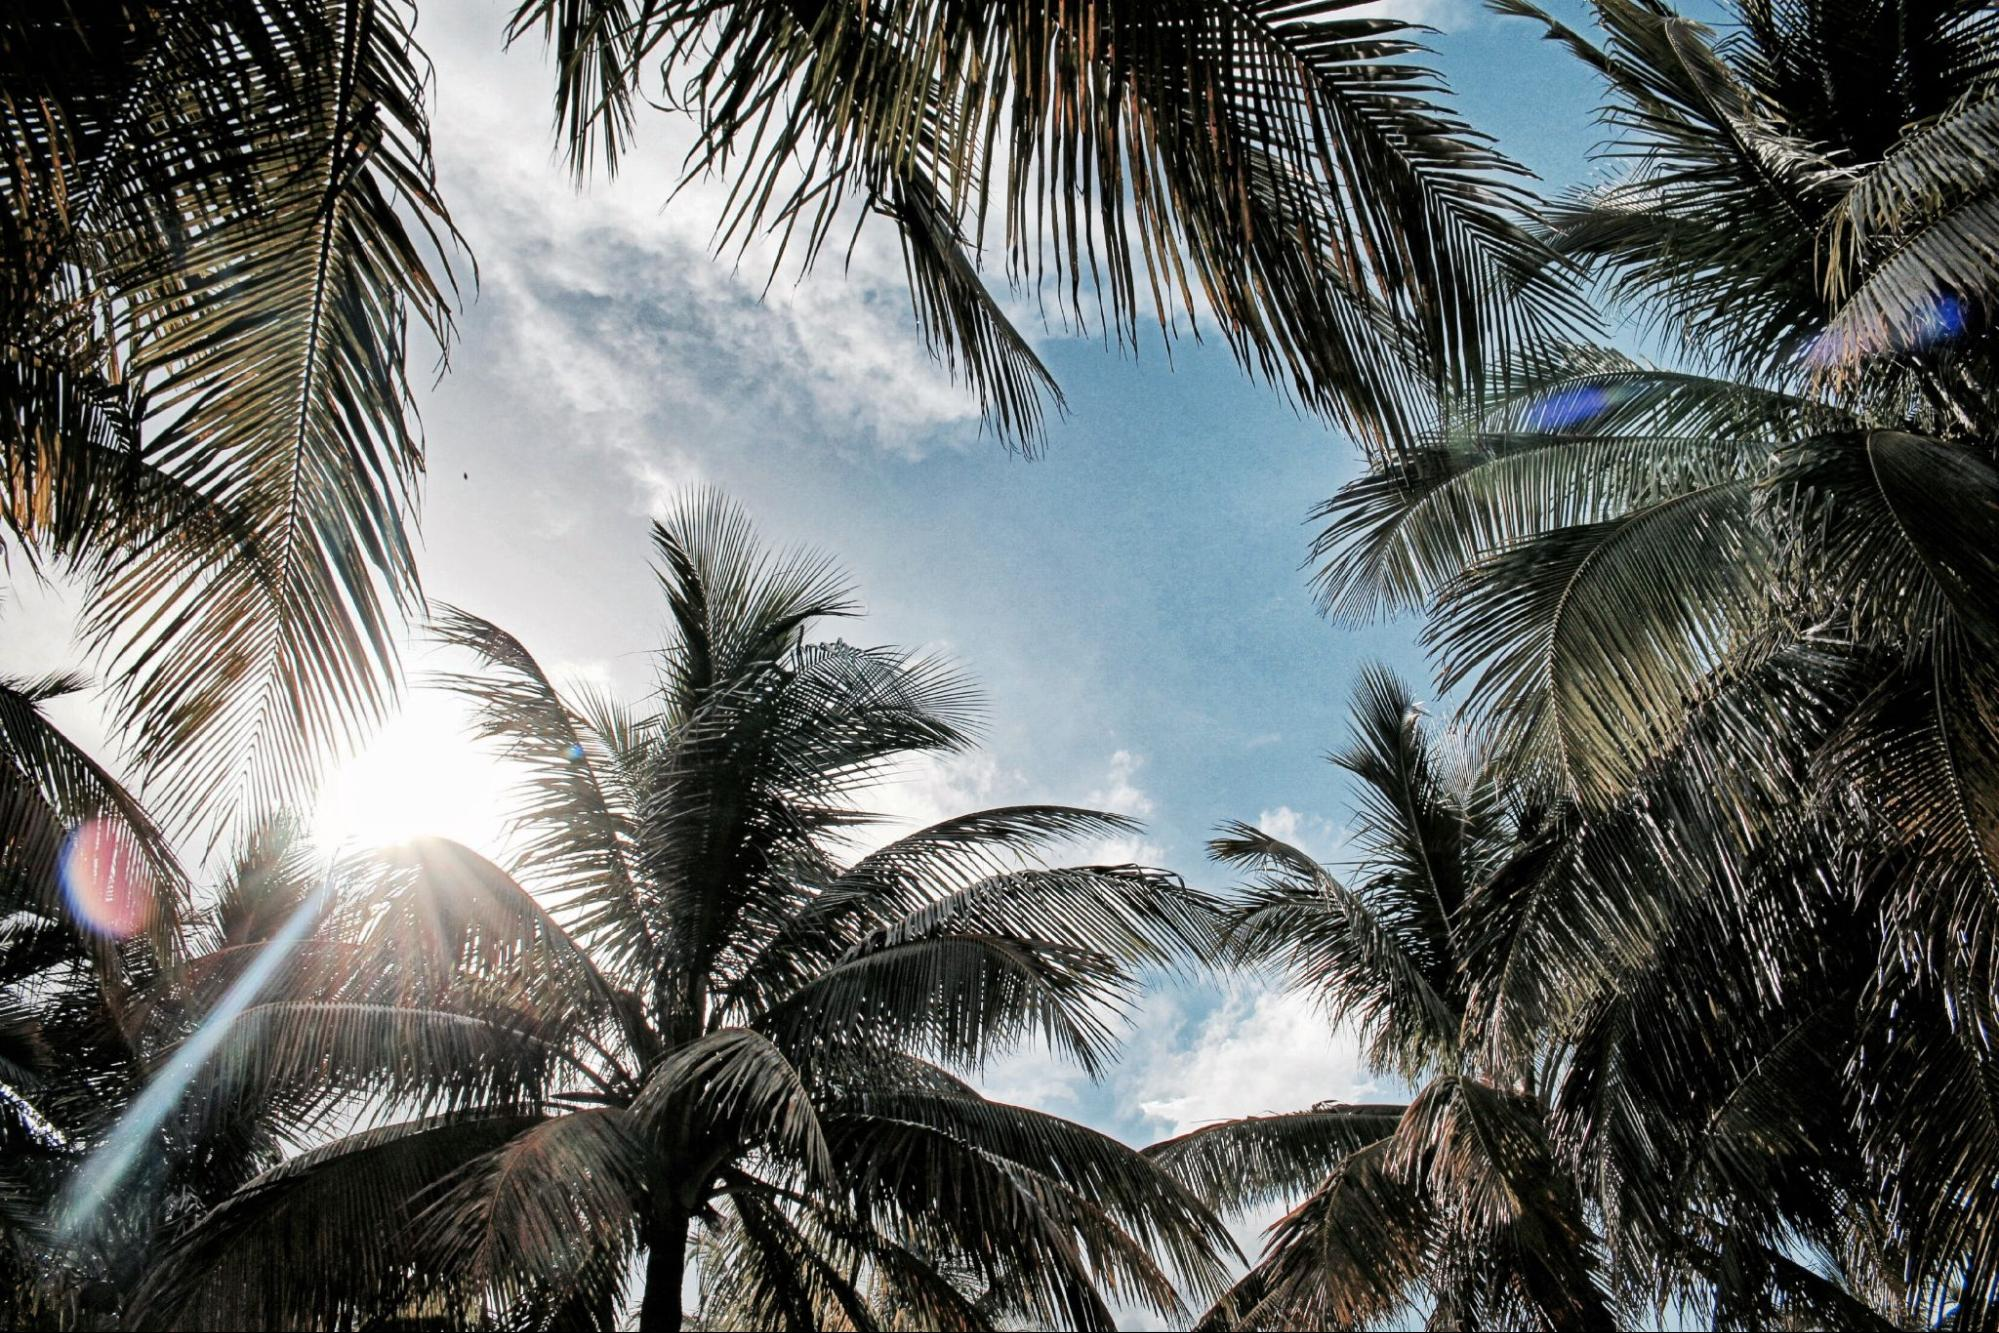 Palm trees in Miami